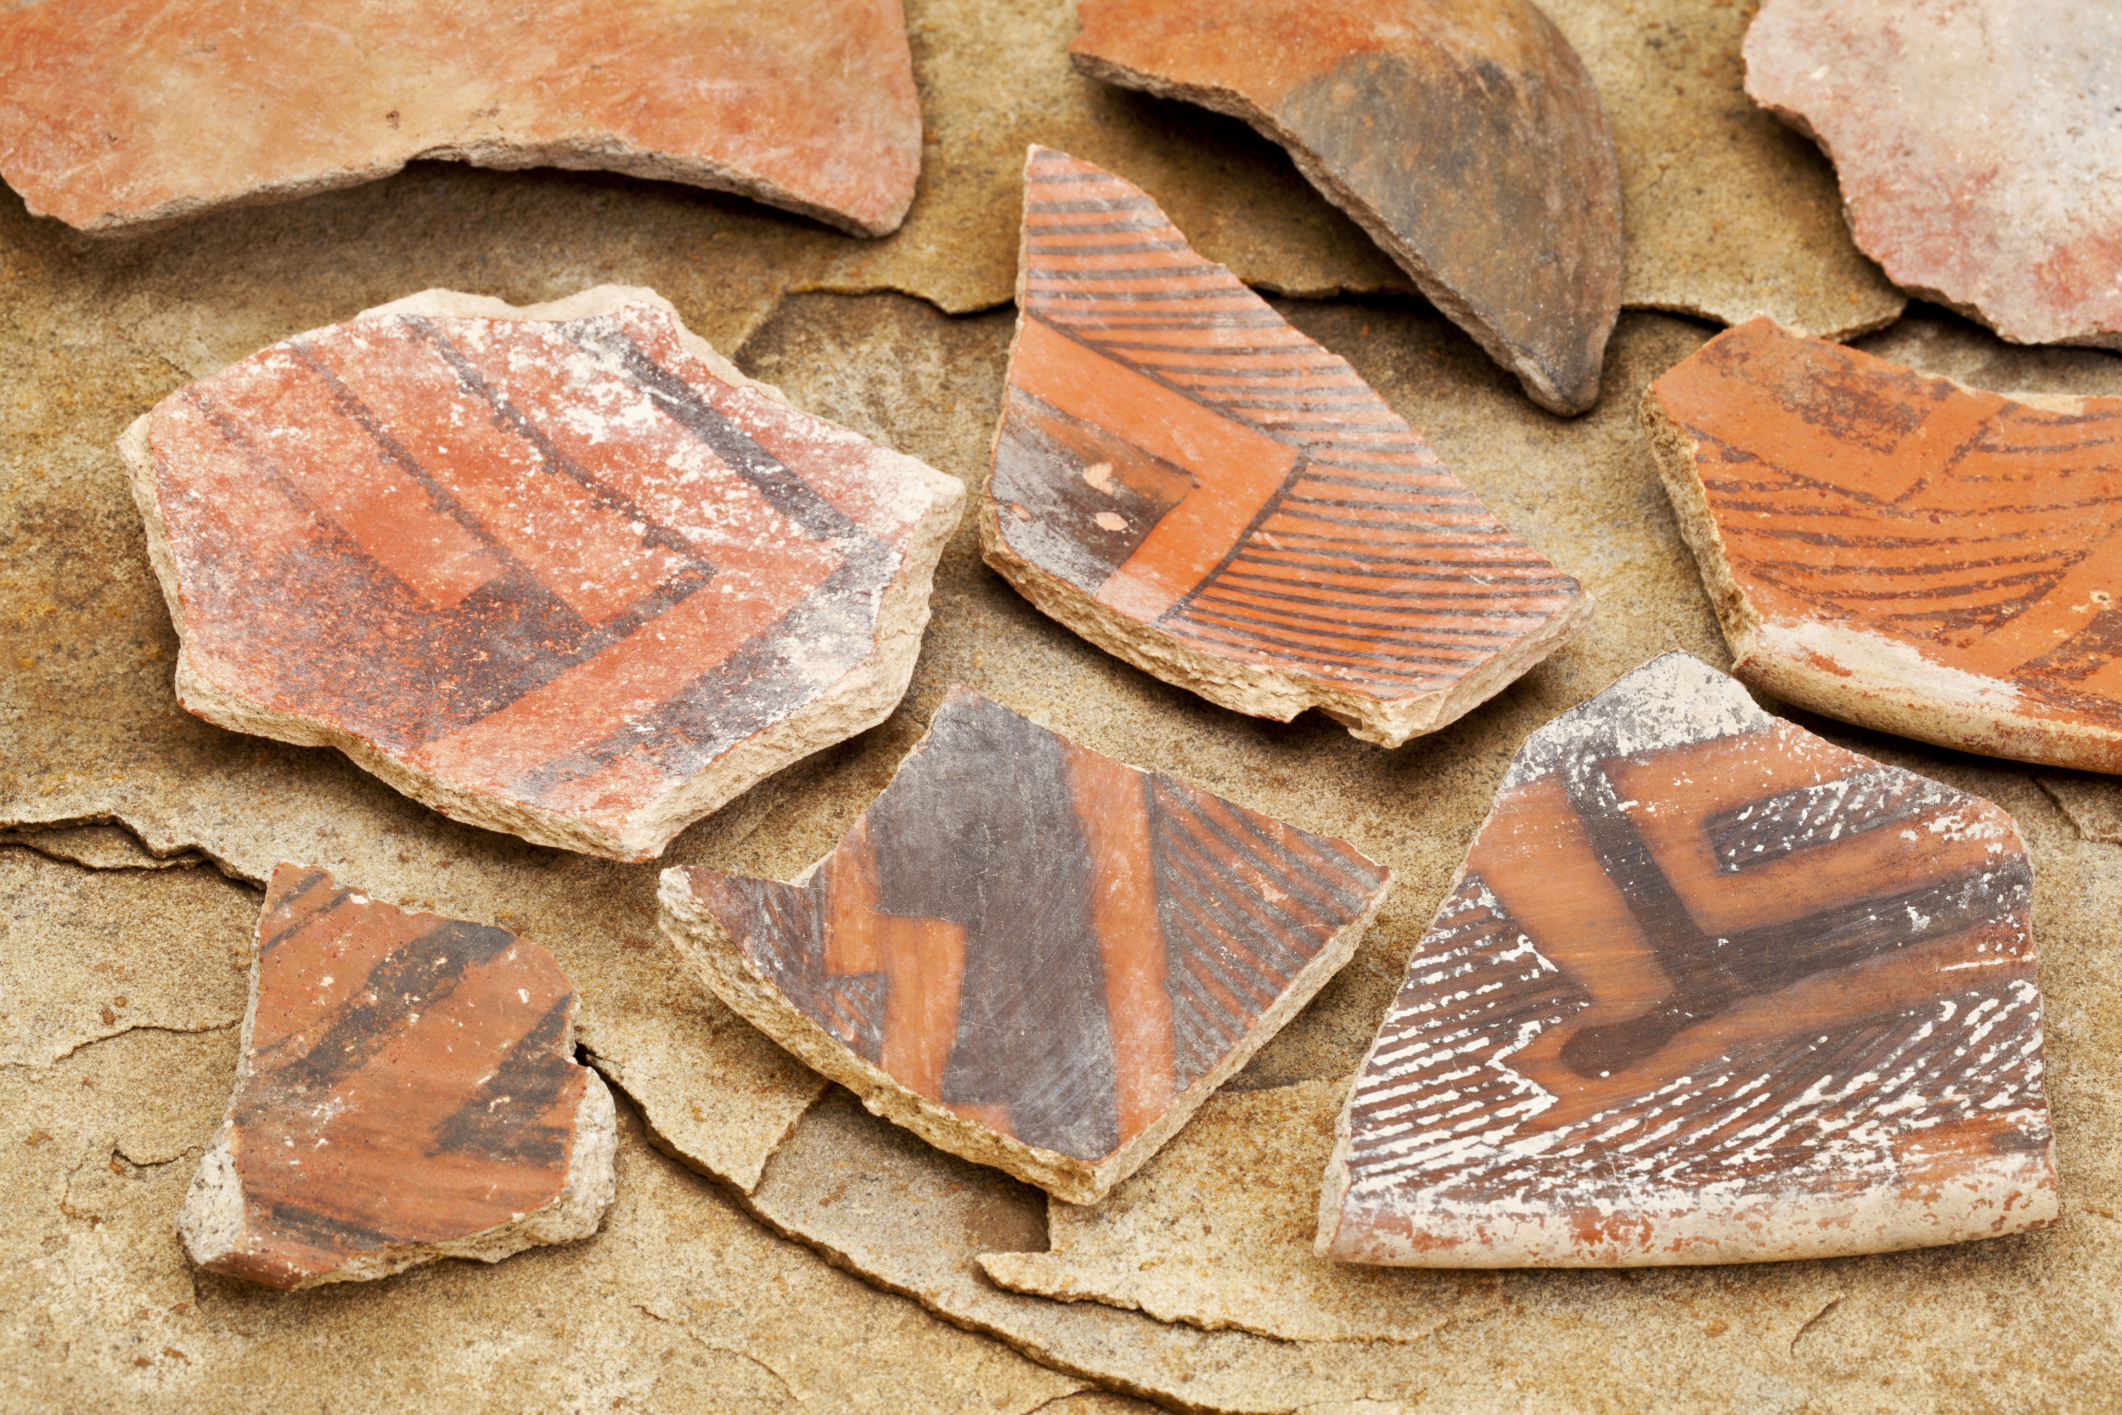 Kentucky Laws for Digging Indian Artifacts